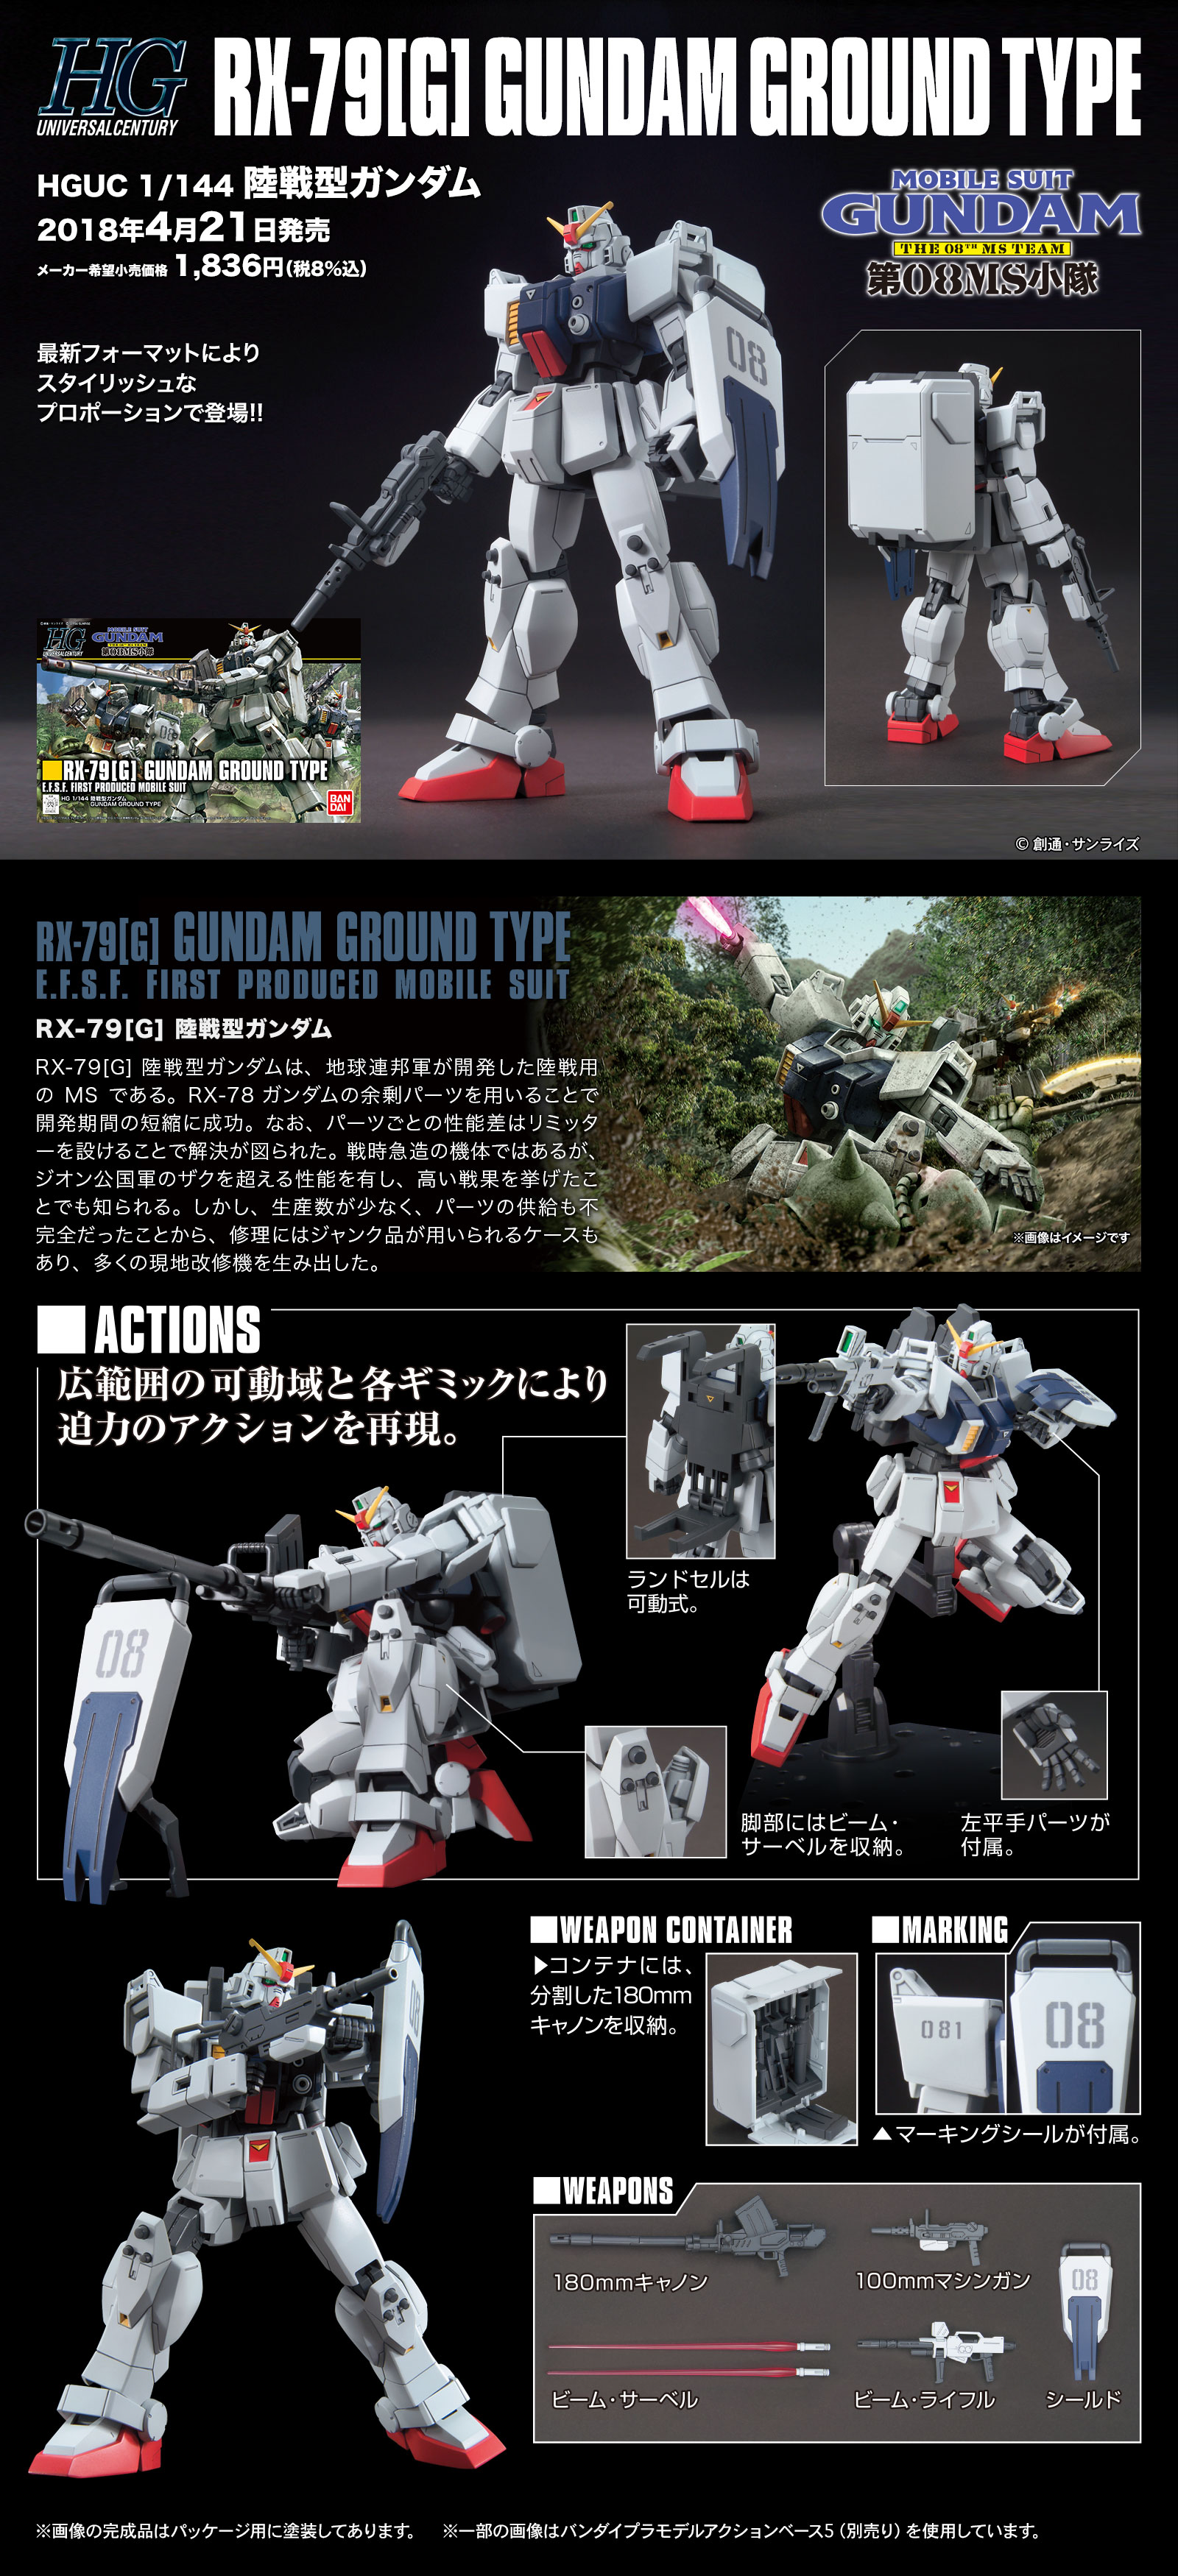 new release bandai gundam gunpla plastic model kit rx-79 gundam ground type 1/144 HGUC high grade universal century 08